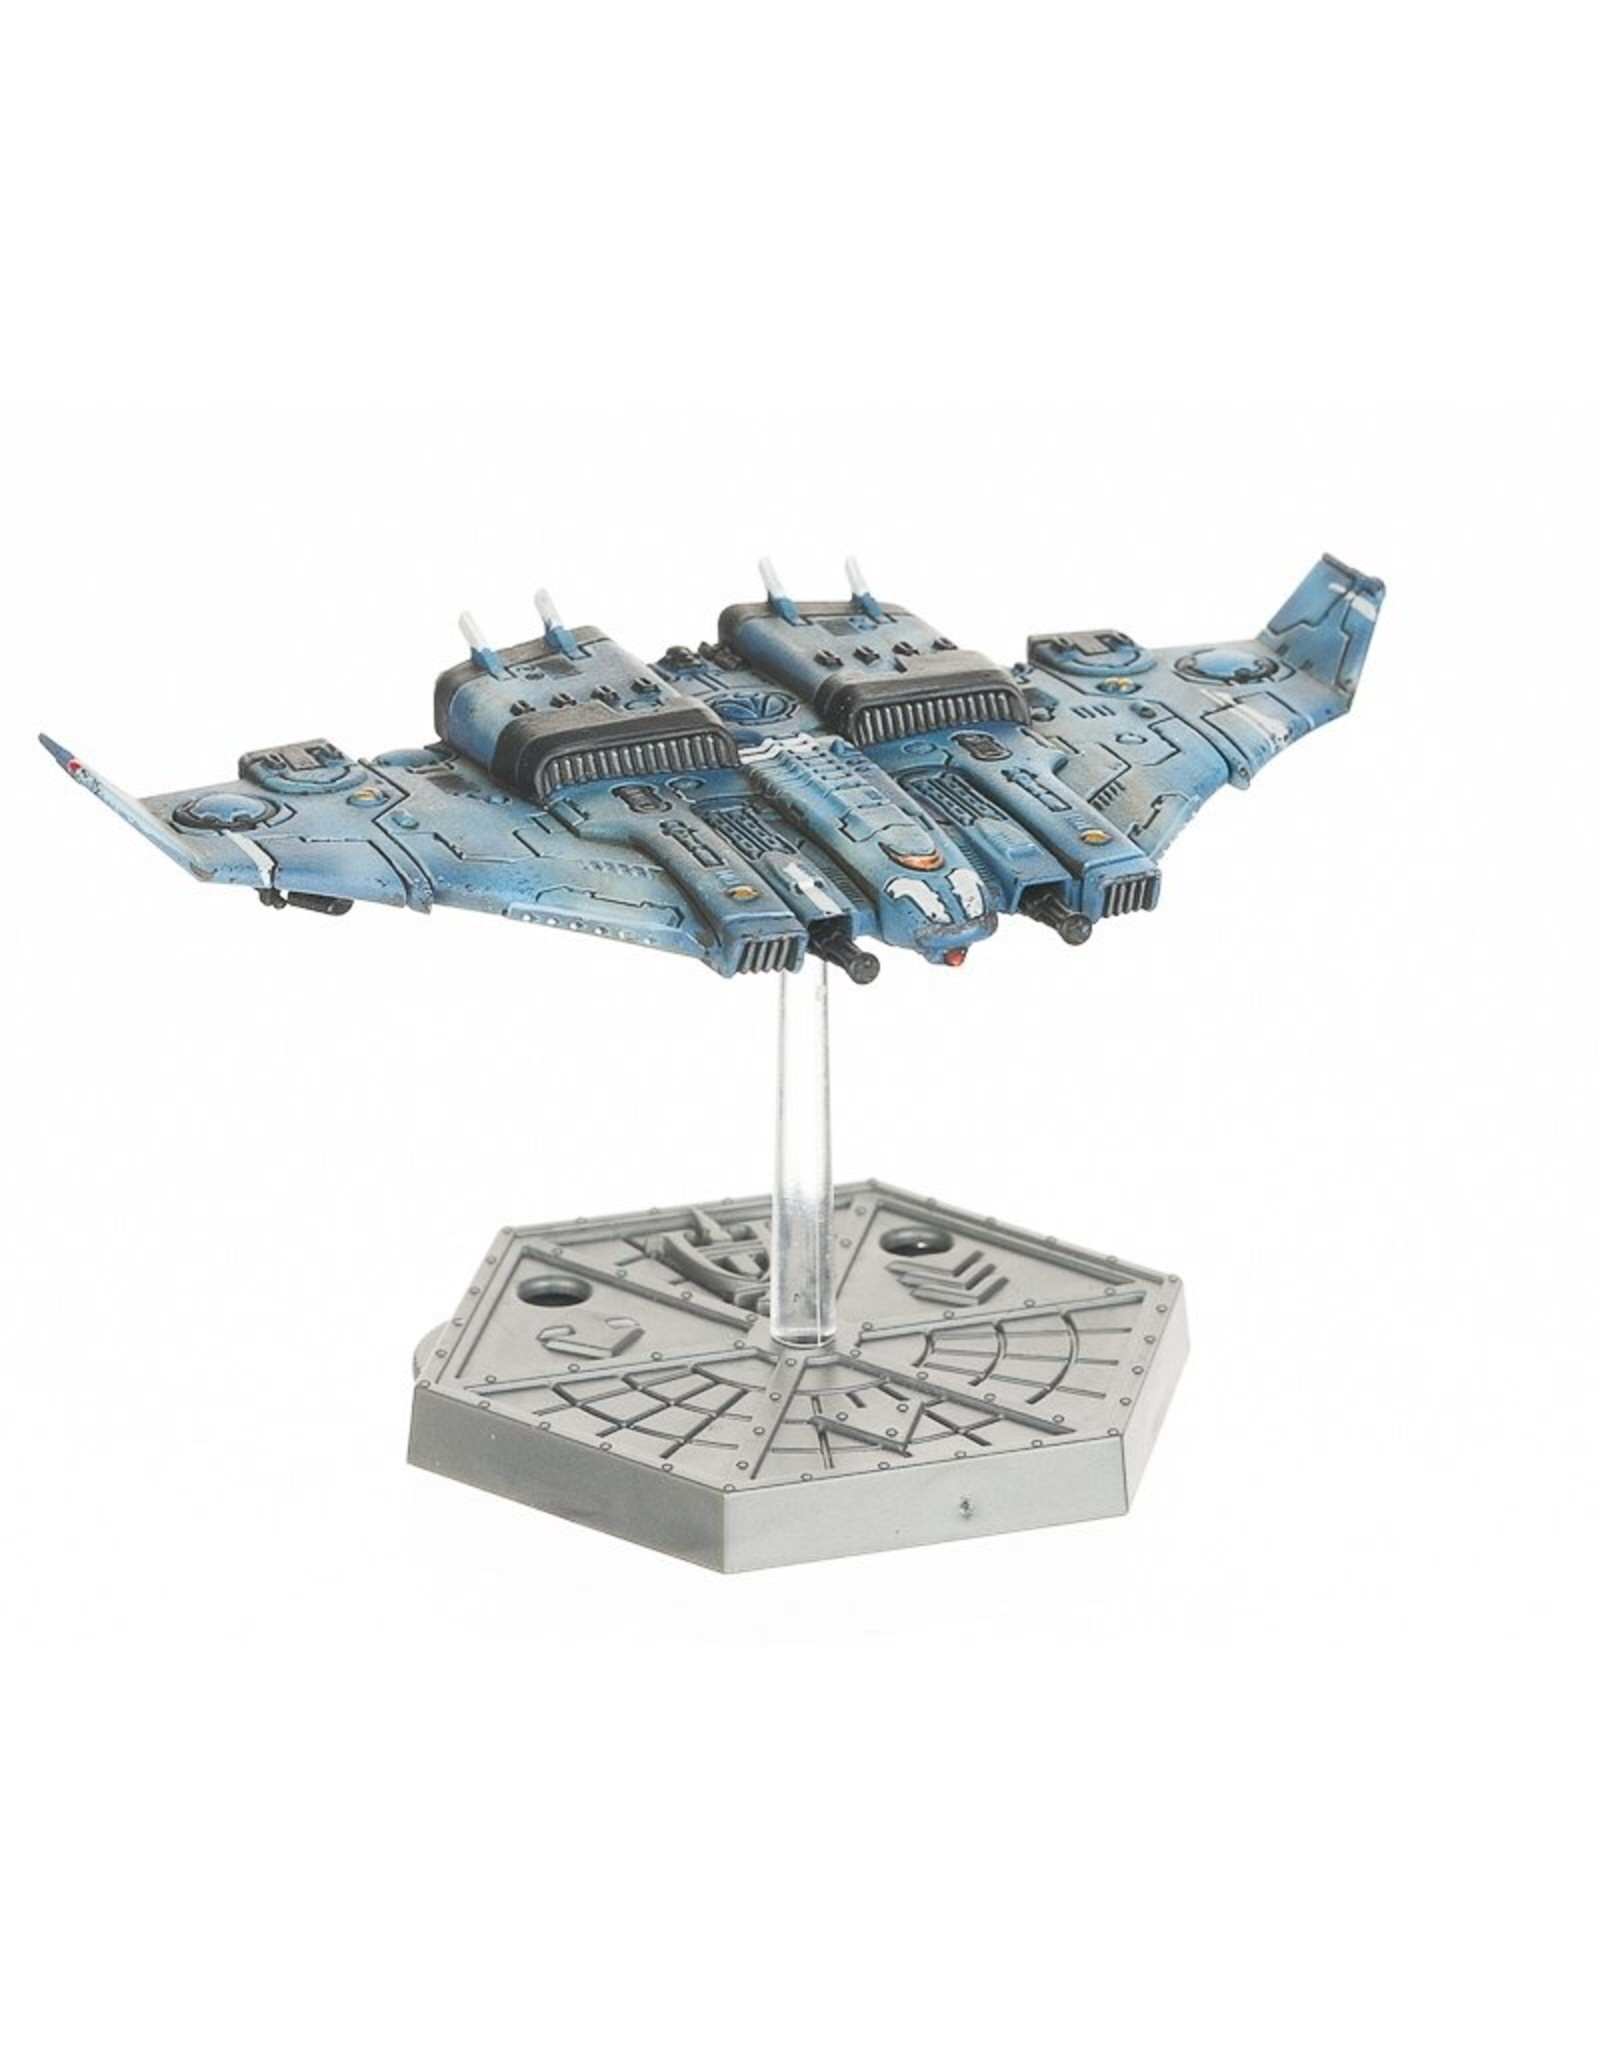 Games Workshop Aero/Imperialis: T'au Tiger Shark Fighter-Bombers